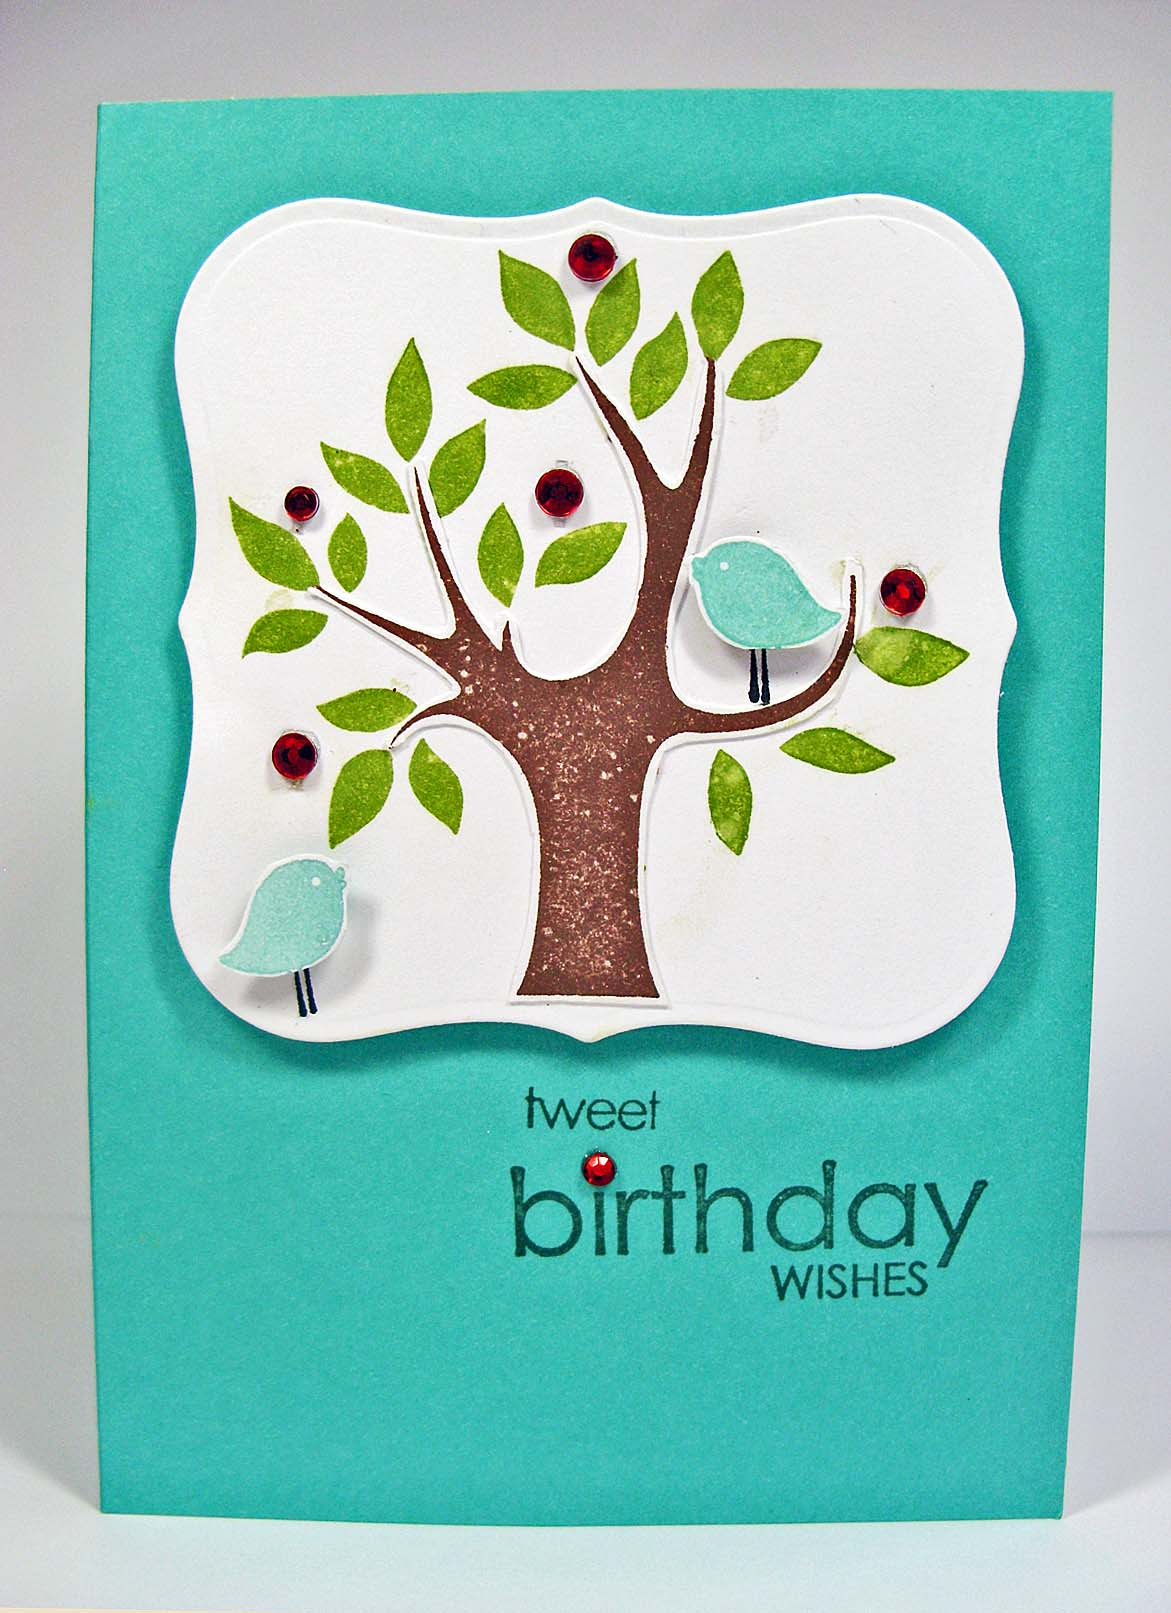 10 Graceful and Attractive Birthday Cards to Send Your Wish to Your Mom 5